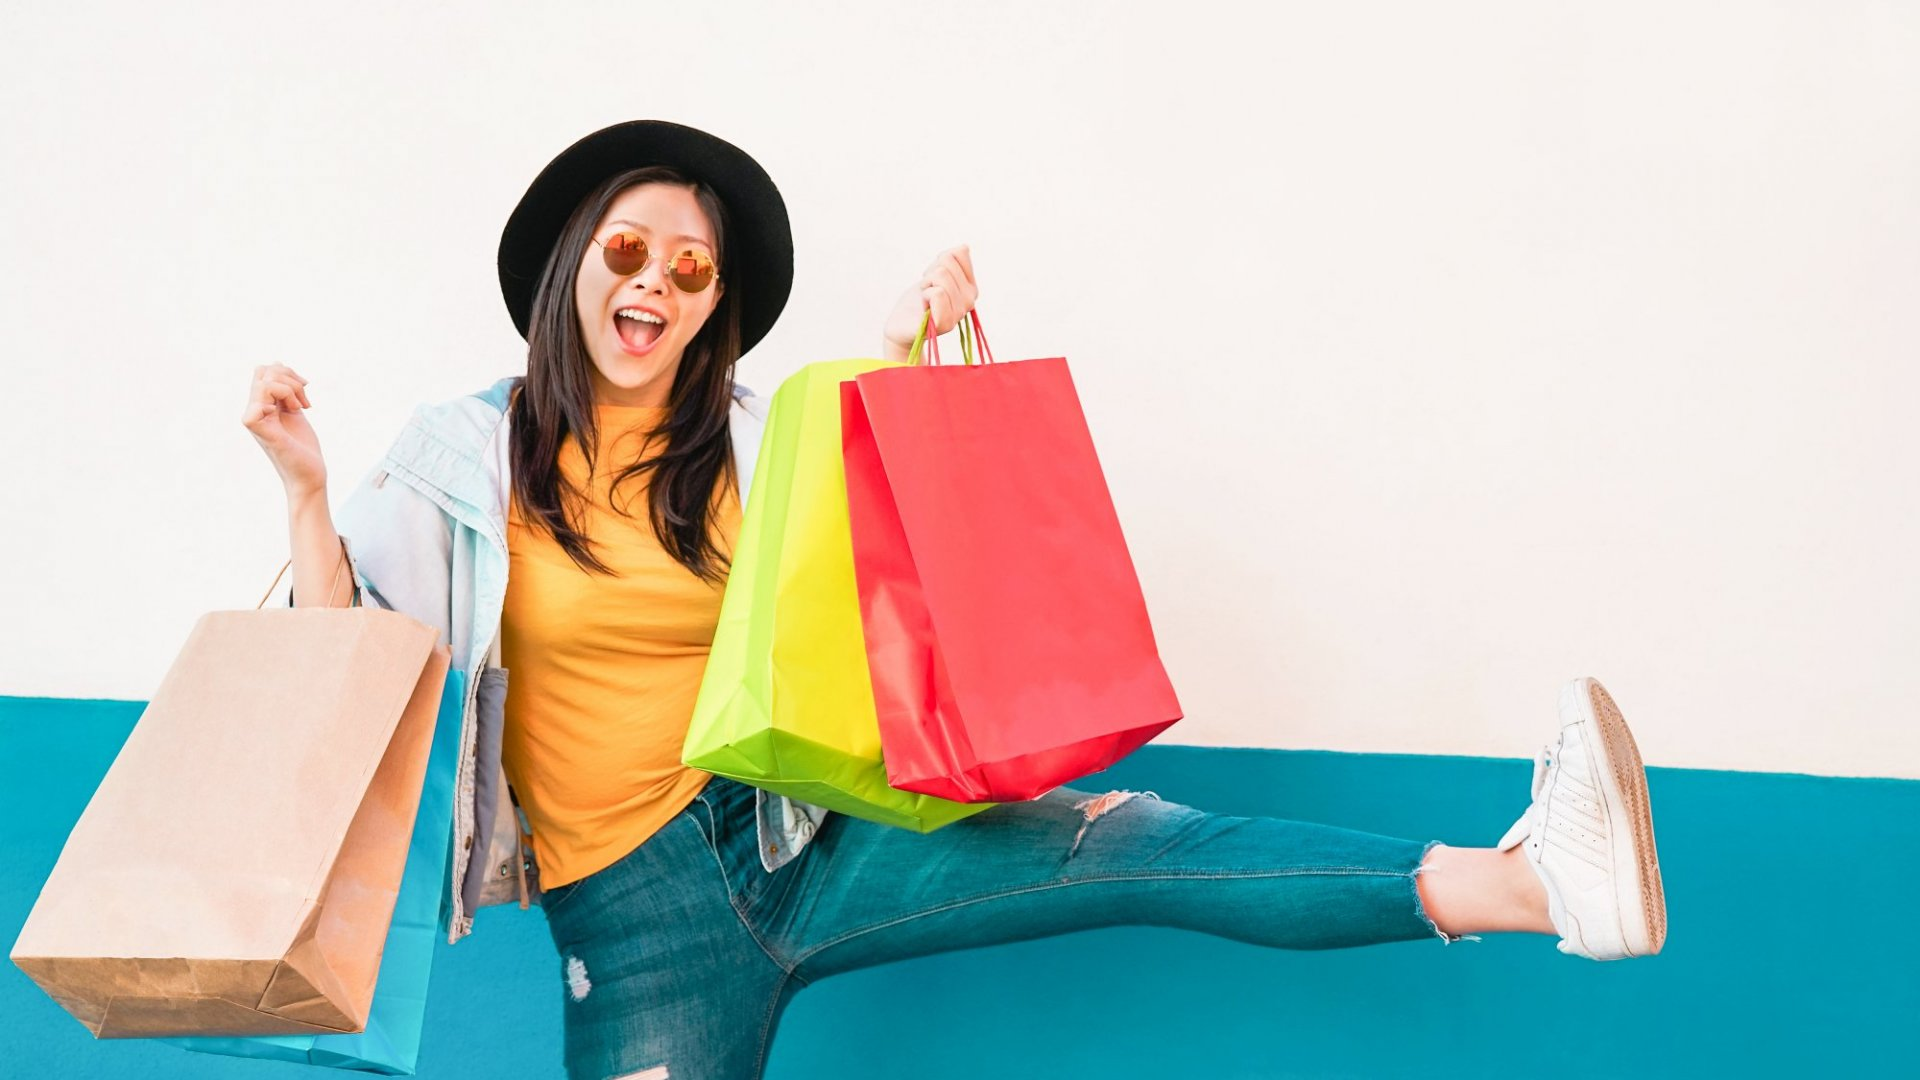 17 of the Best Black Friday and Cyber Monday 2019 Deals for Millennials